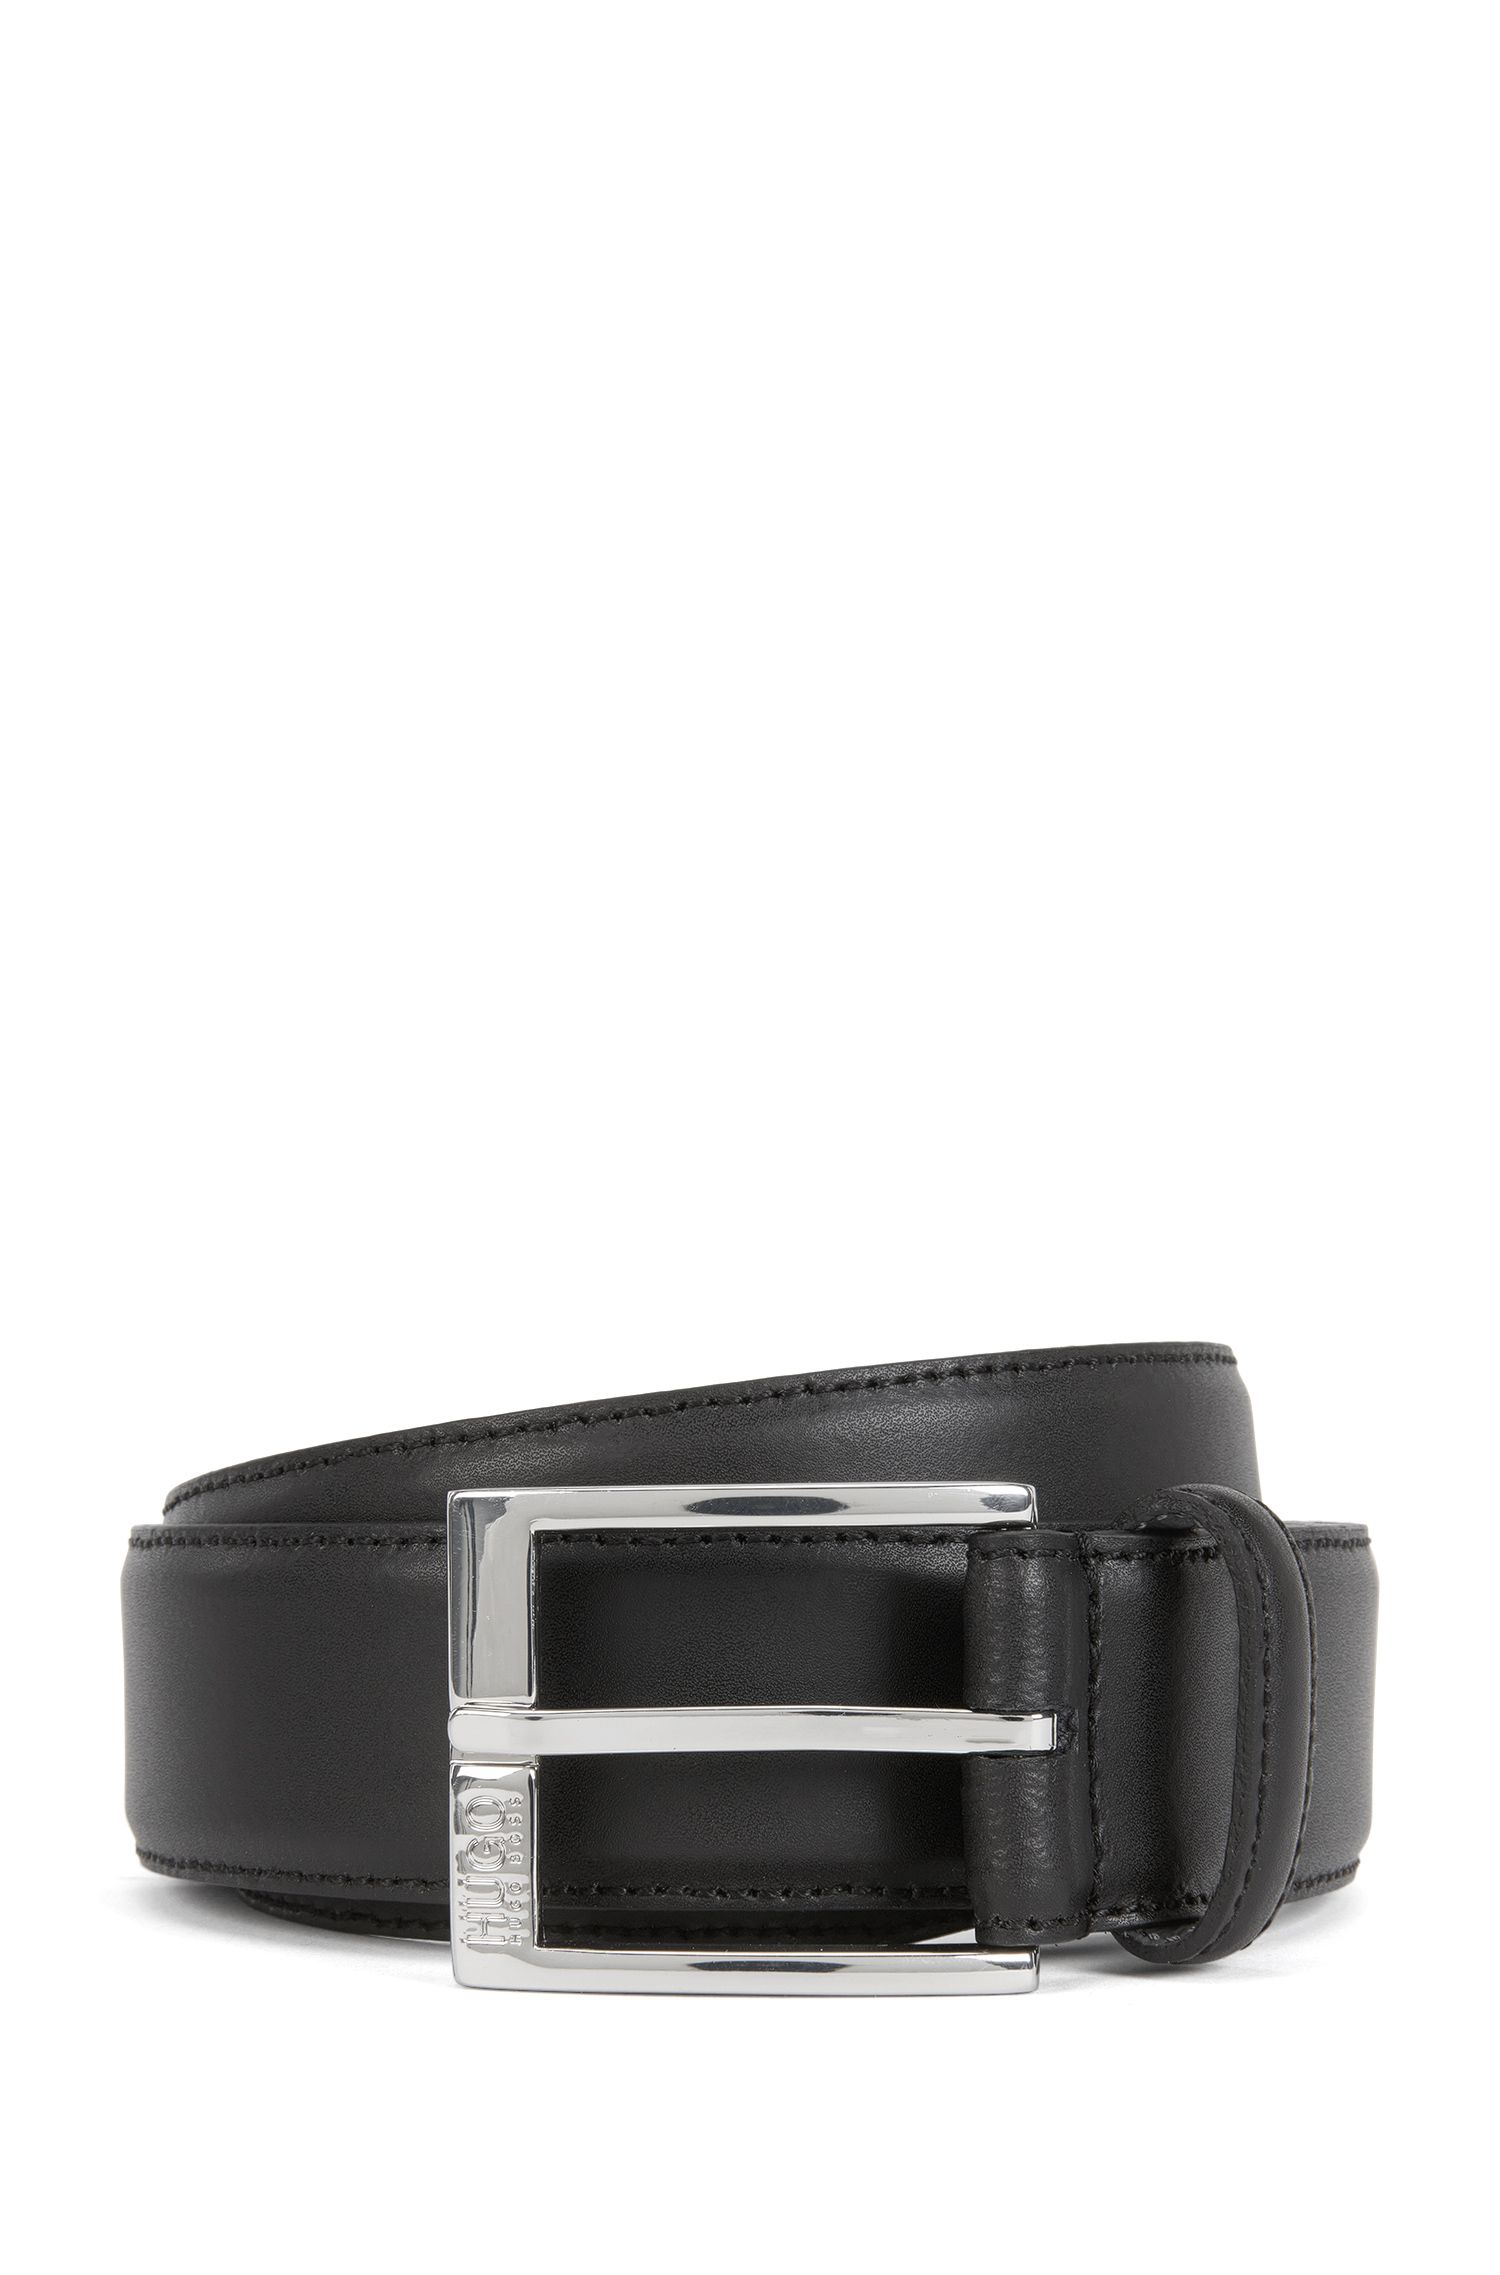 Leather belt with tonal stitching